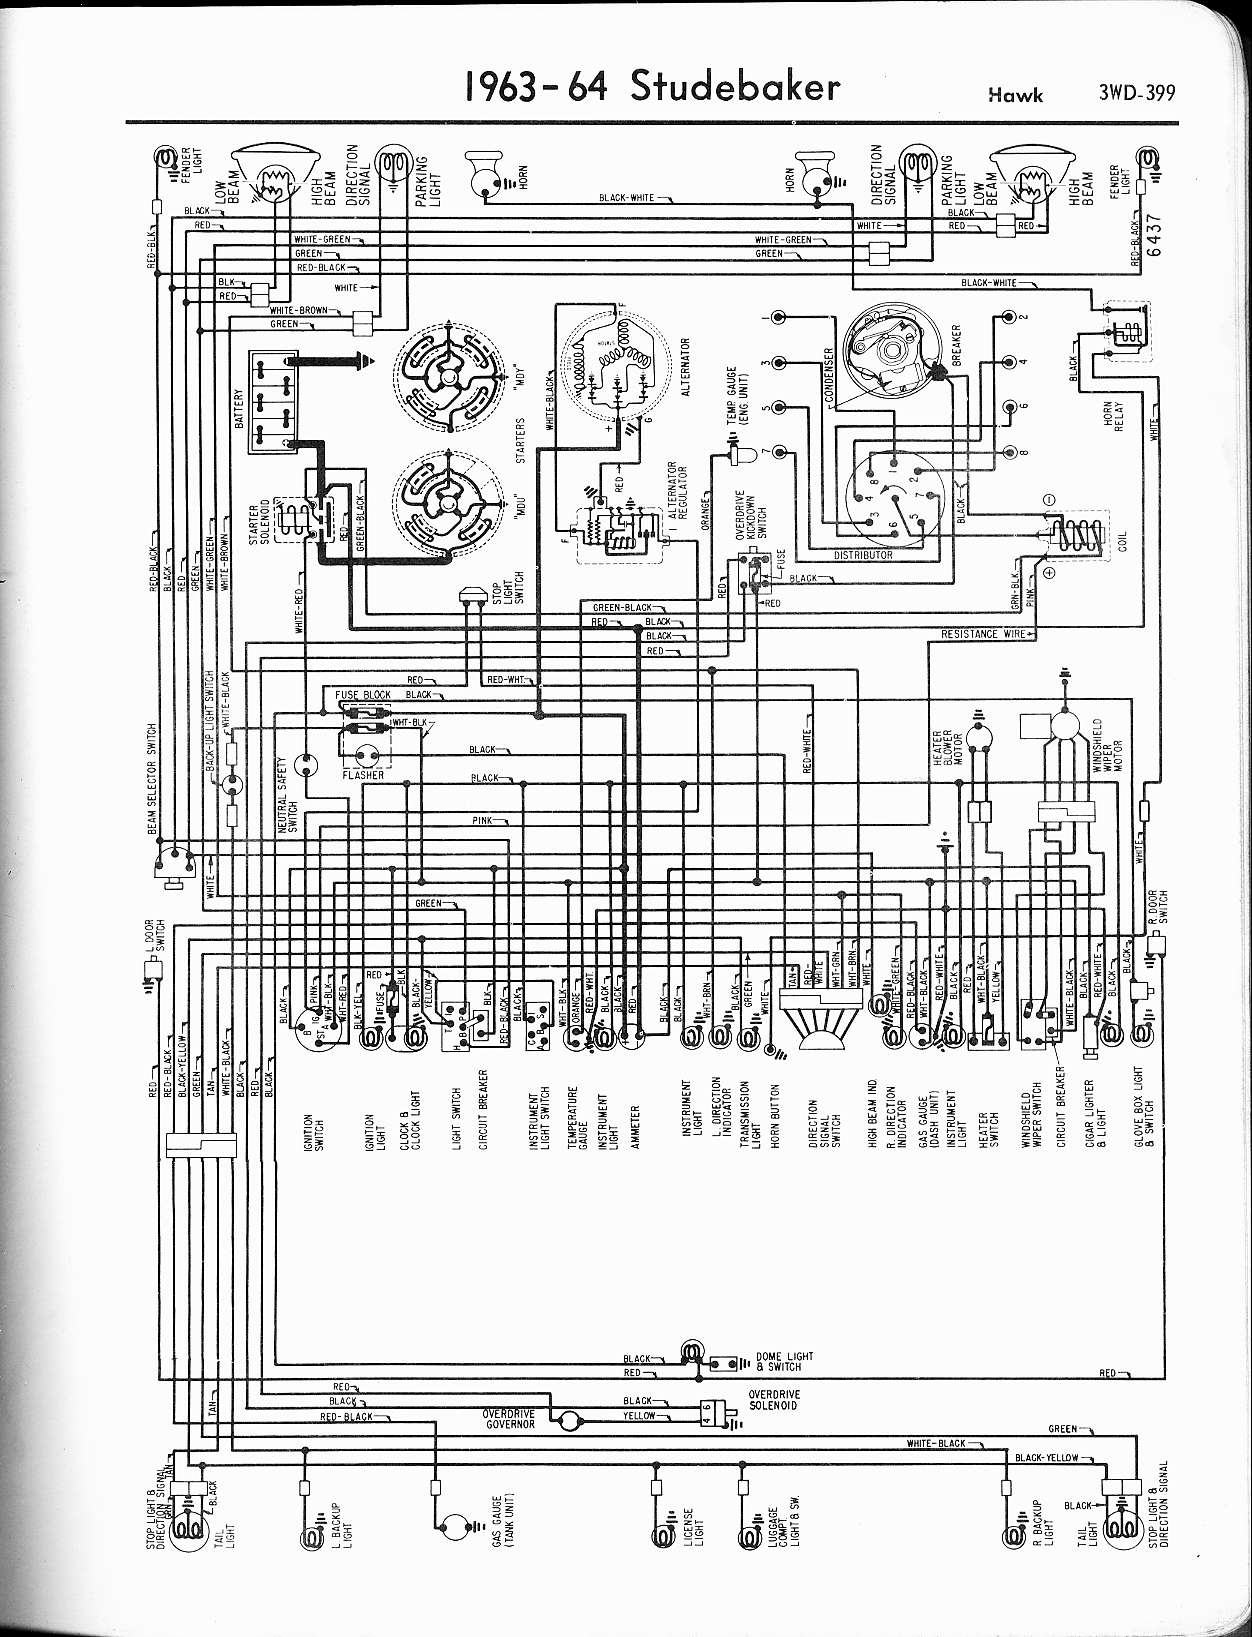 MWire5765 399 studebaker wiring diagrams the old car manual project 1955 studebaker wiring diagram at webbmarketing.co